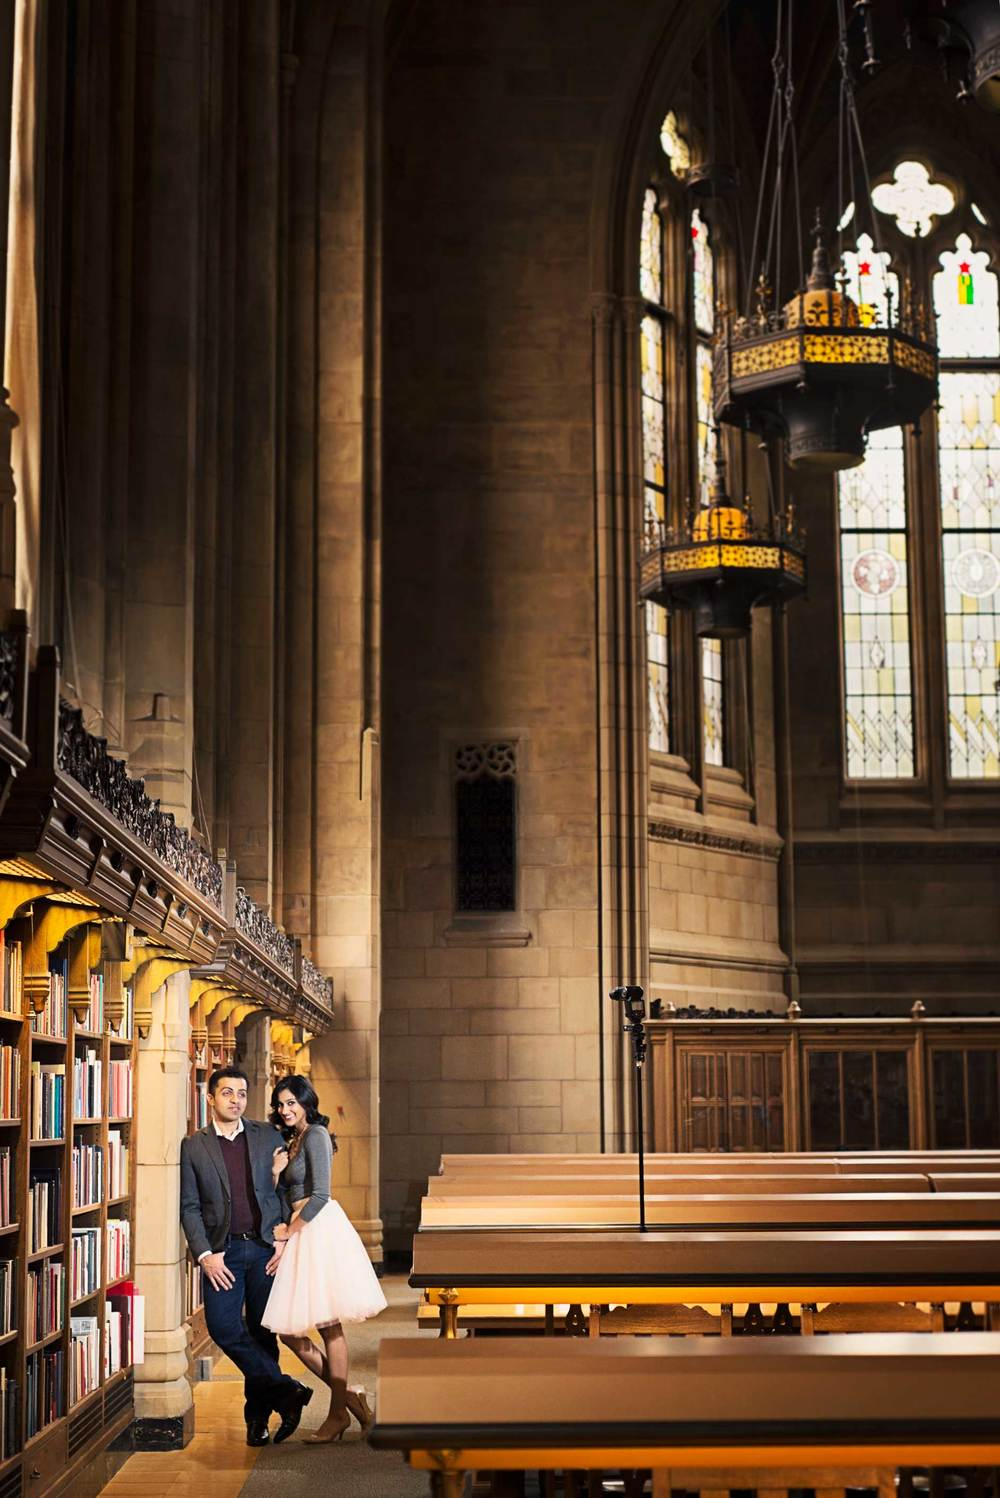 Romantic engagement_UW Library_Seattle Wedding Photographer_Kelsey Lane Photography_7